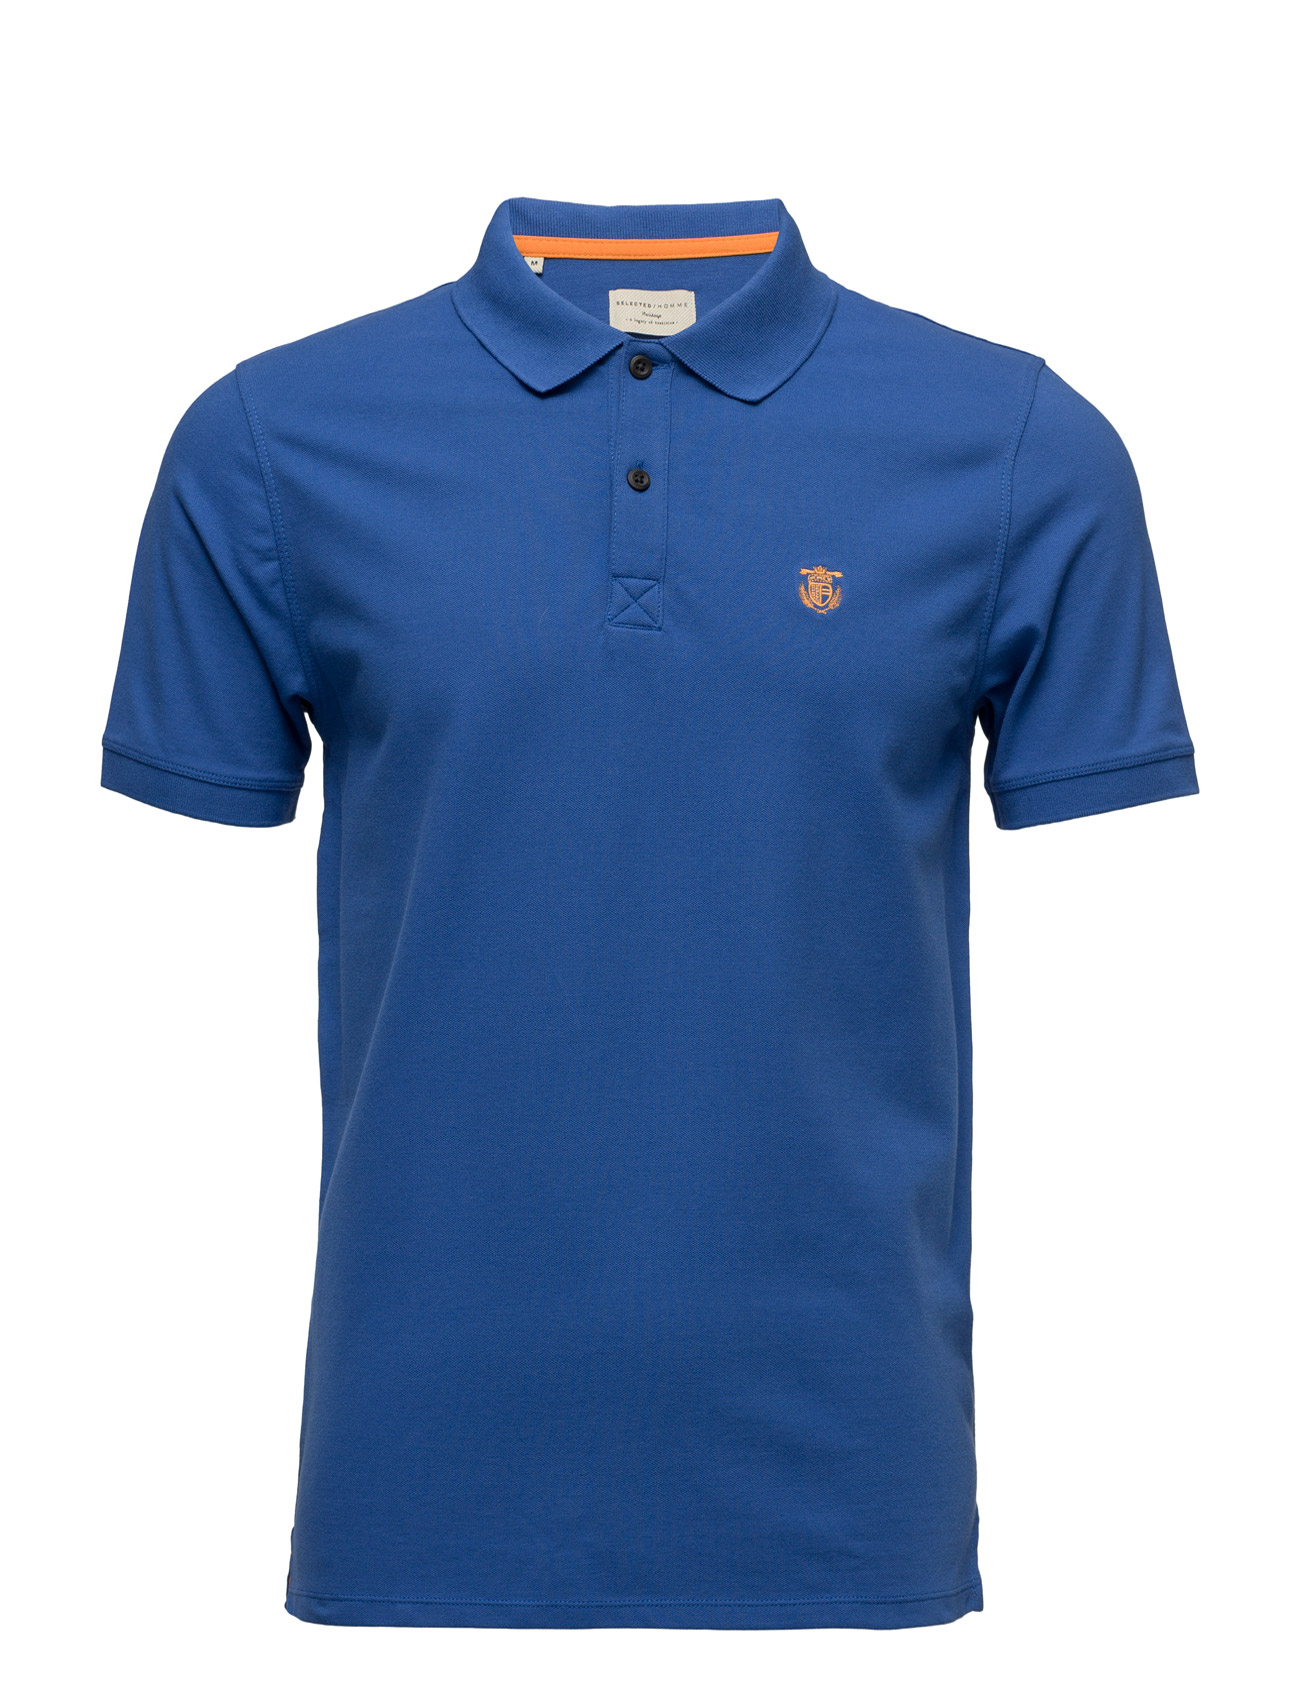 Shdaro Ss Embroidery Polo Noos Selected Homme Polo t-shirts til Mænd i